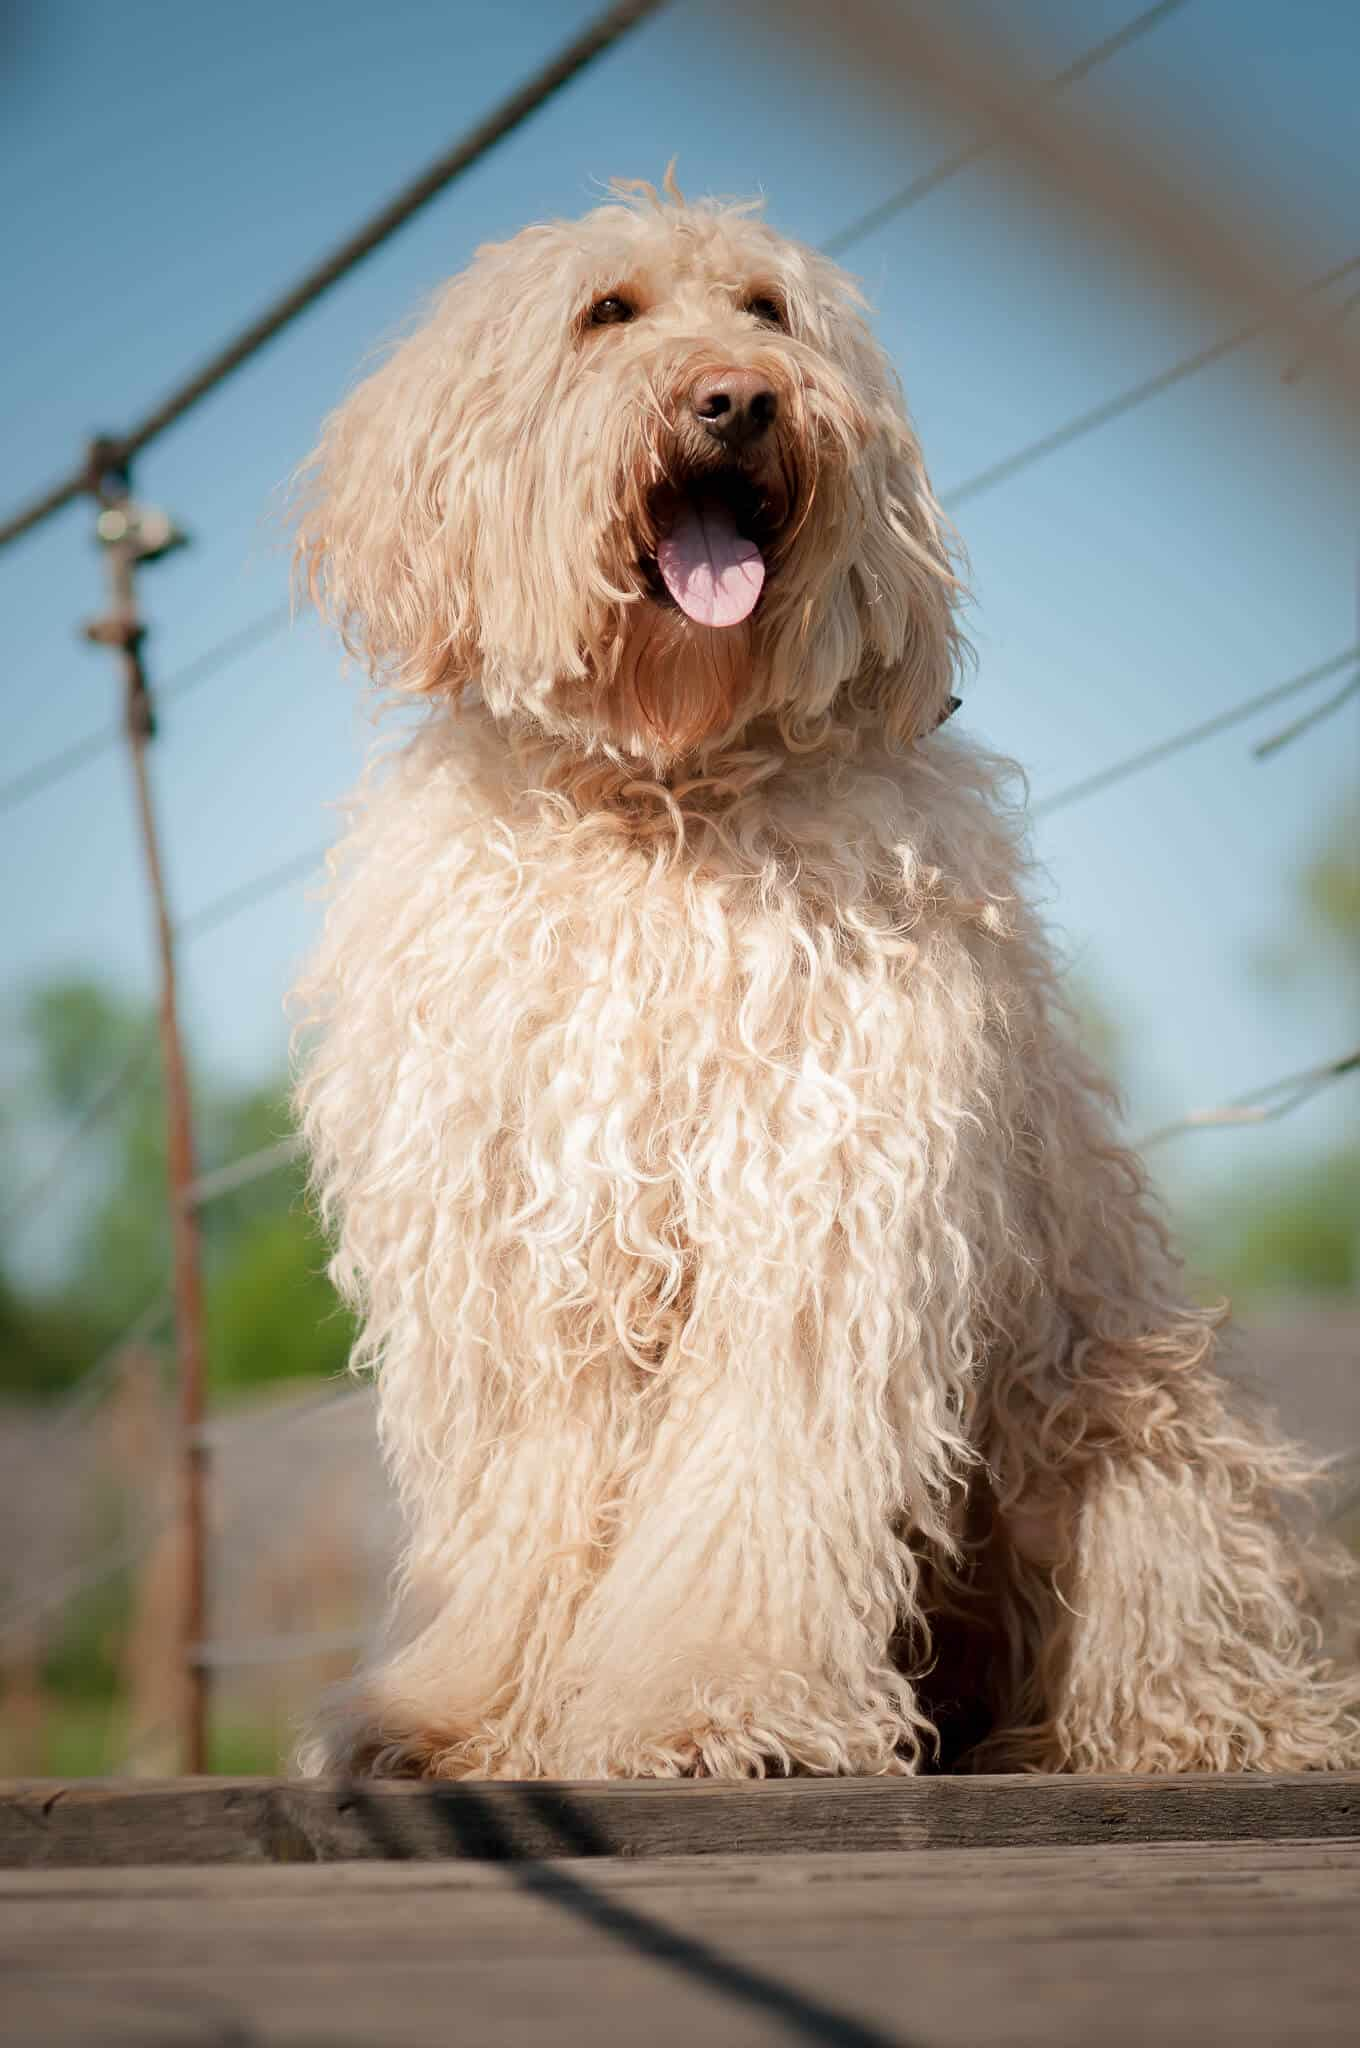 The Australian Labradoodle Gadi stands overlay